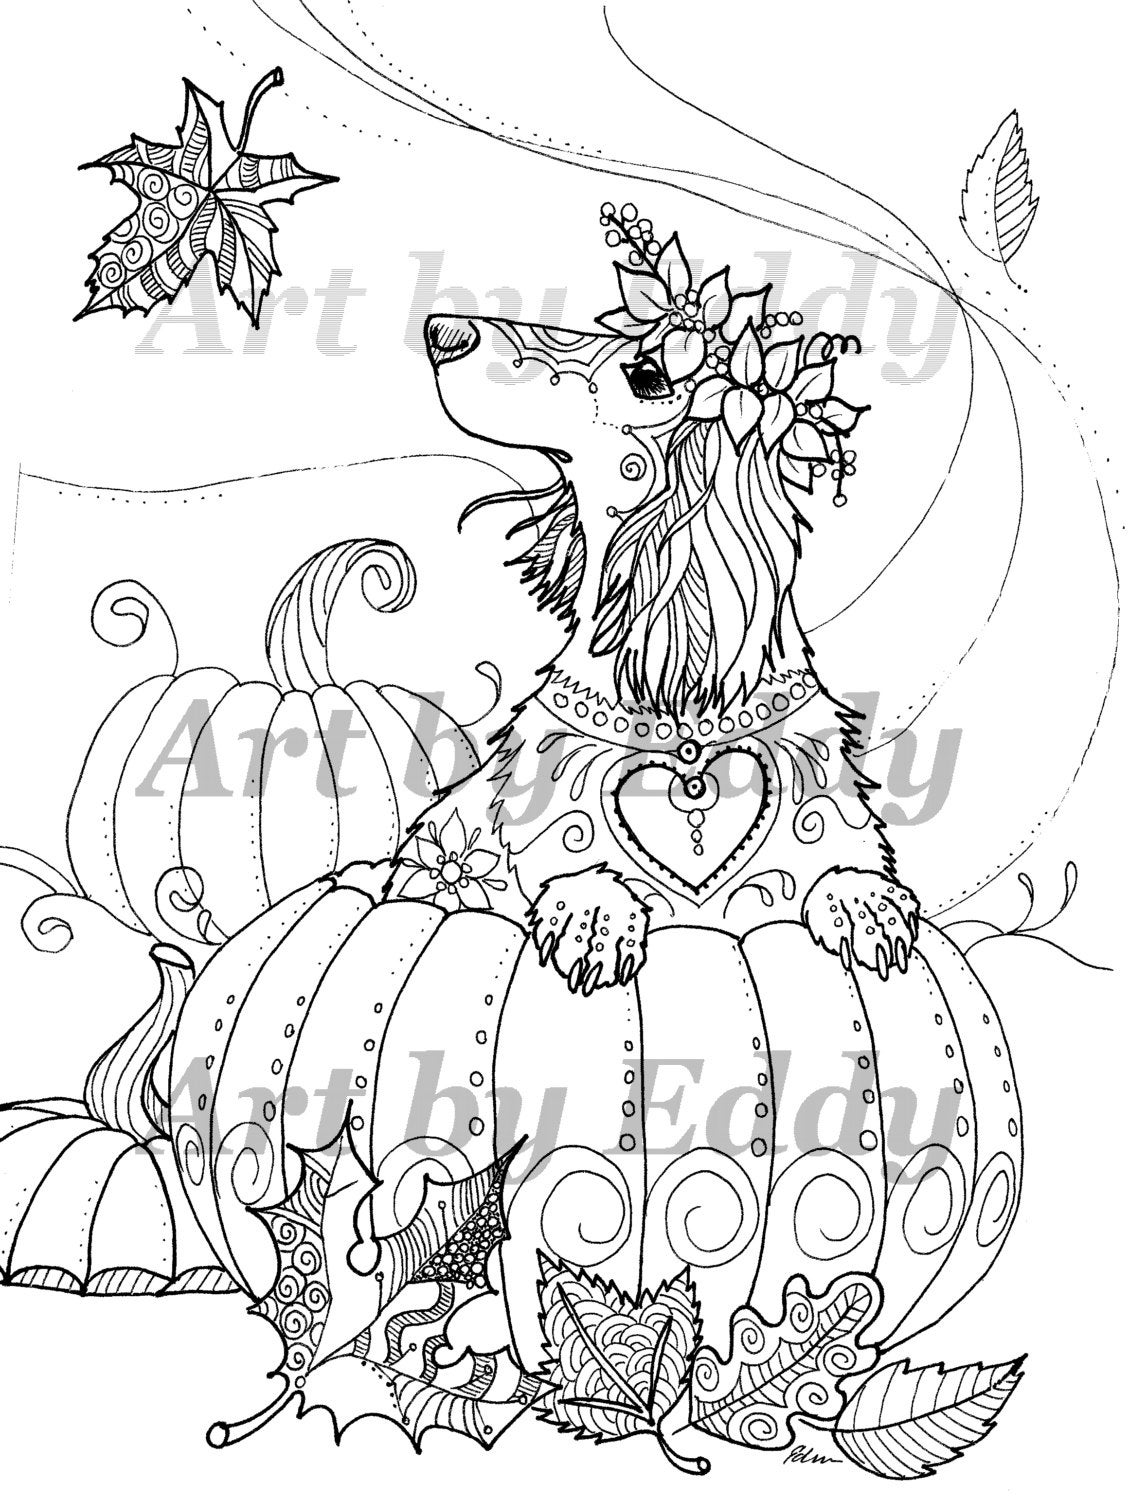 daschunds coloring pages   Art of Dachshund Single Coloring Page Harvest Doxie